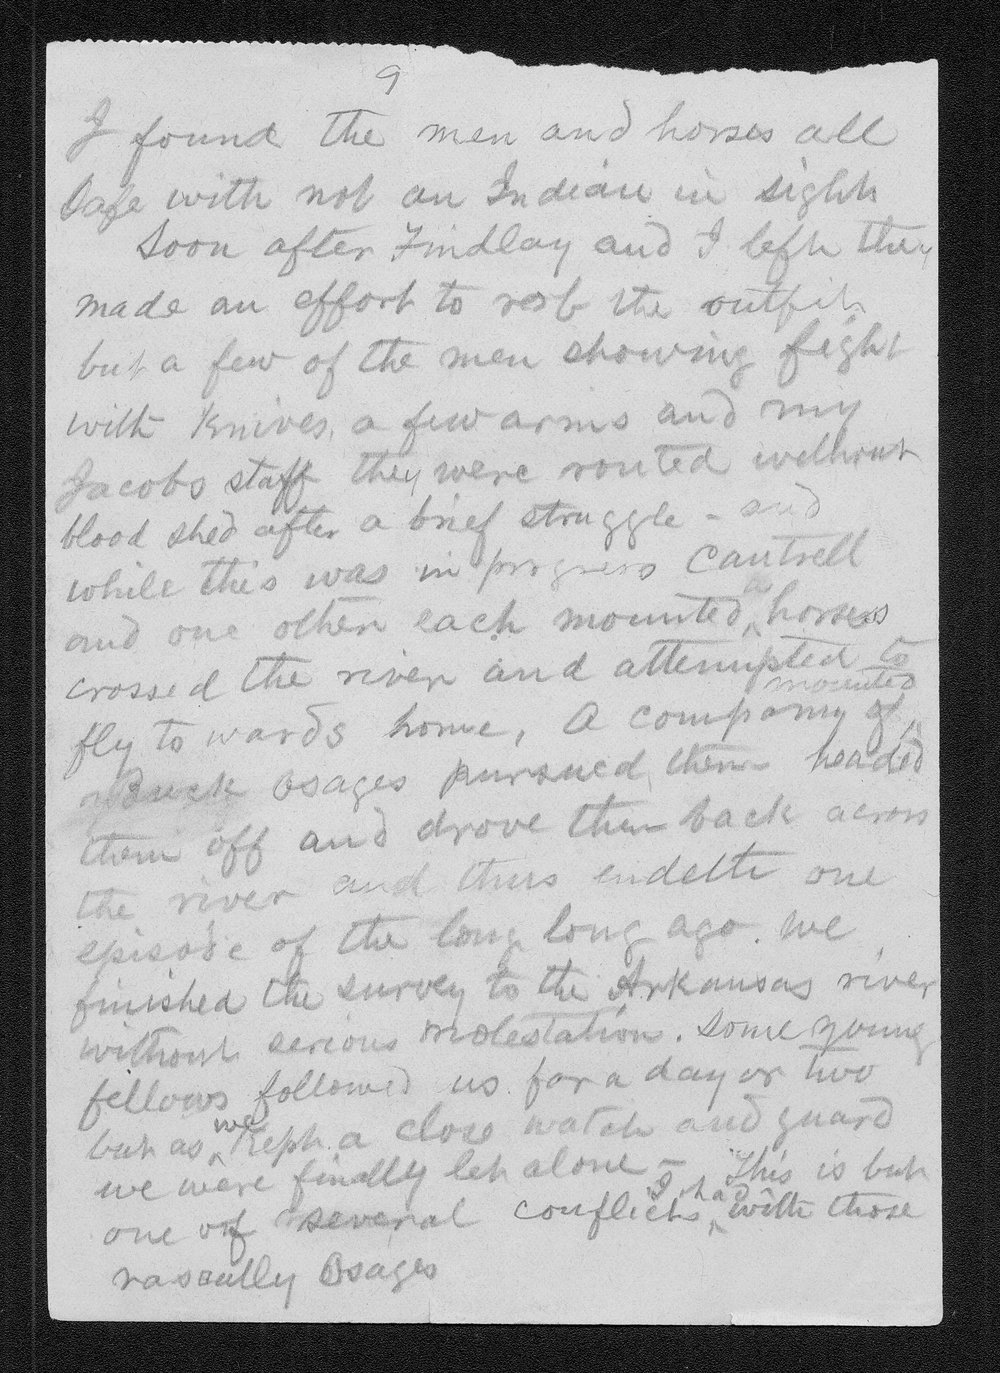 John C. McCoy to Franklin G. Adams - 9